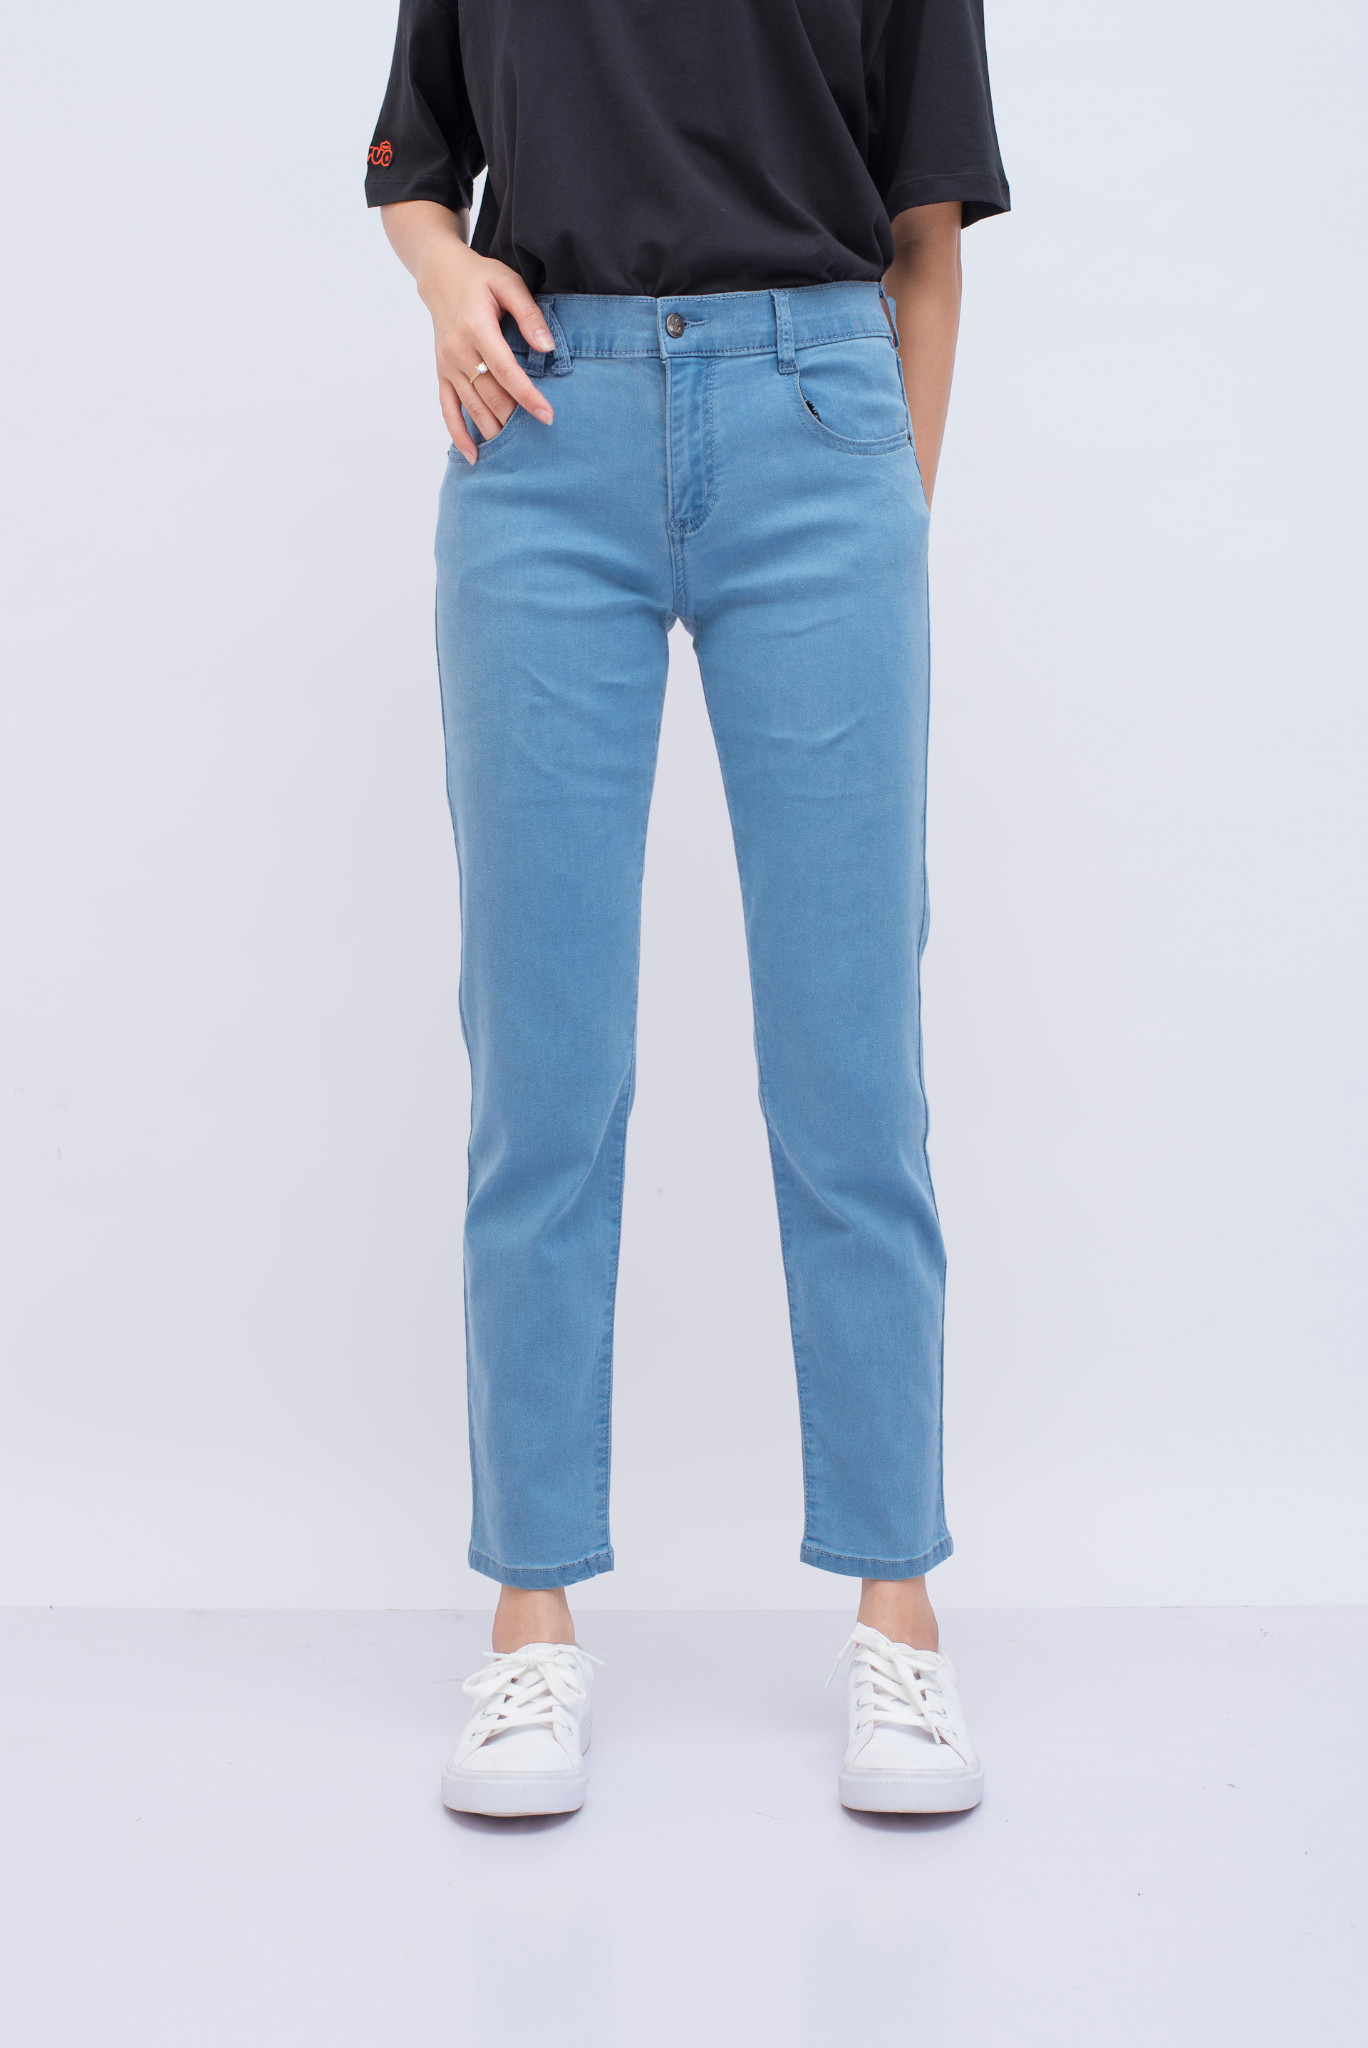 JEANS NỮ BASIC SKINNY PUSH UP